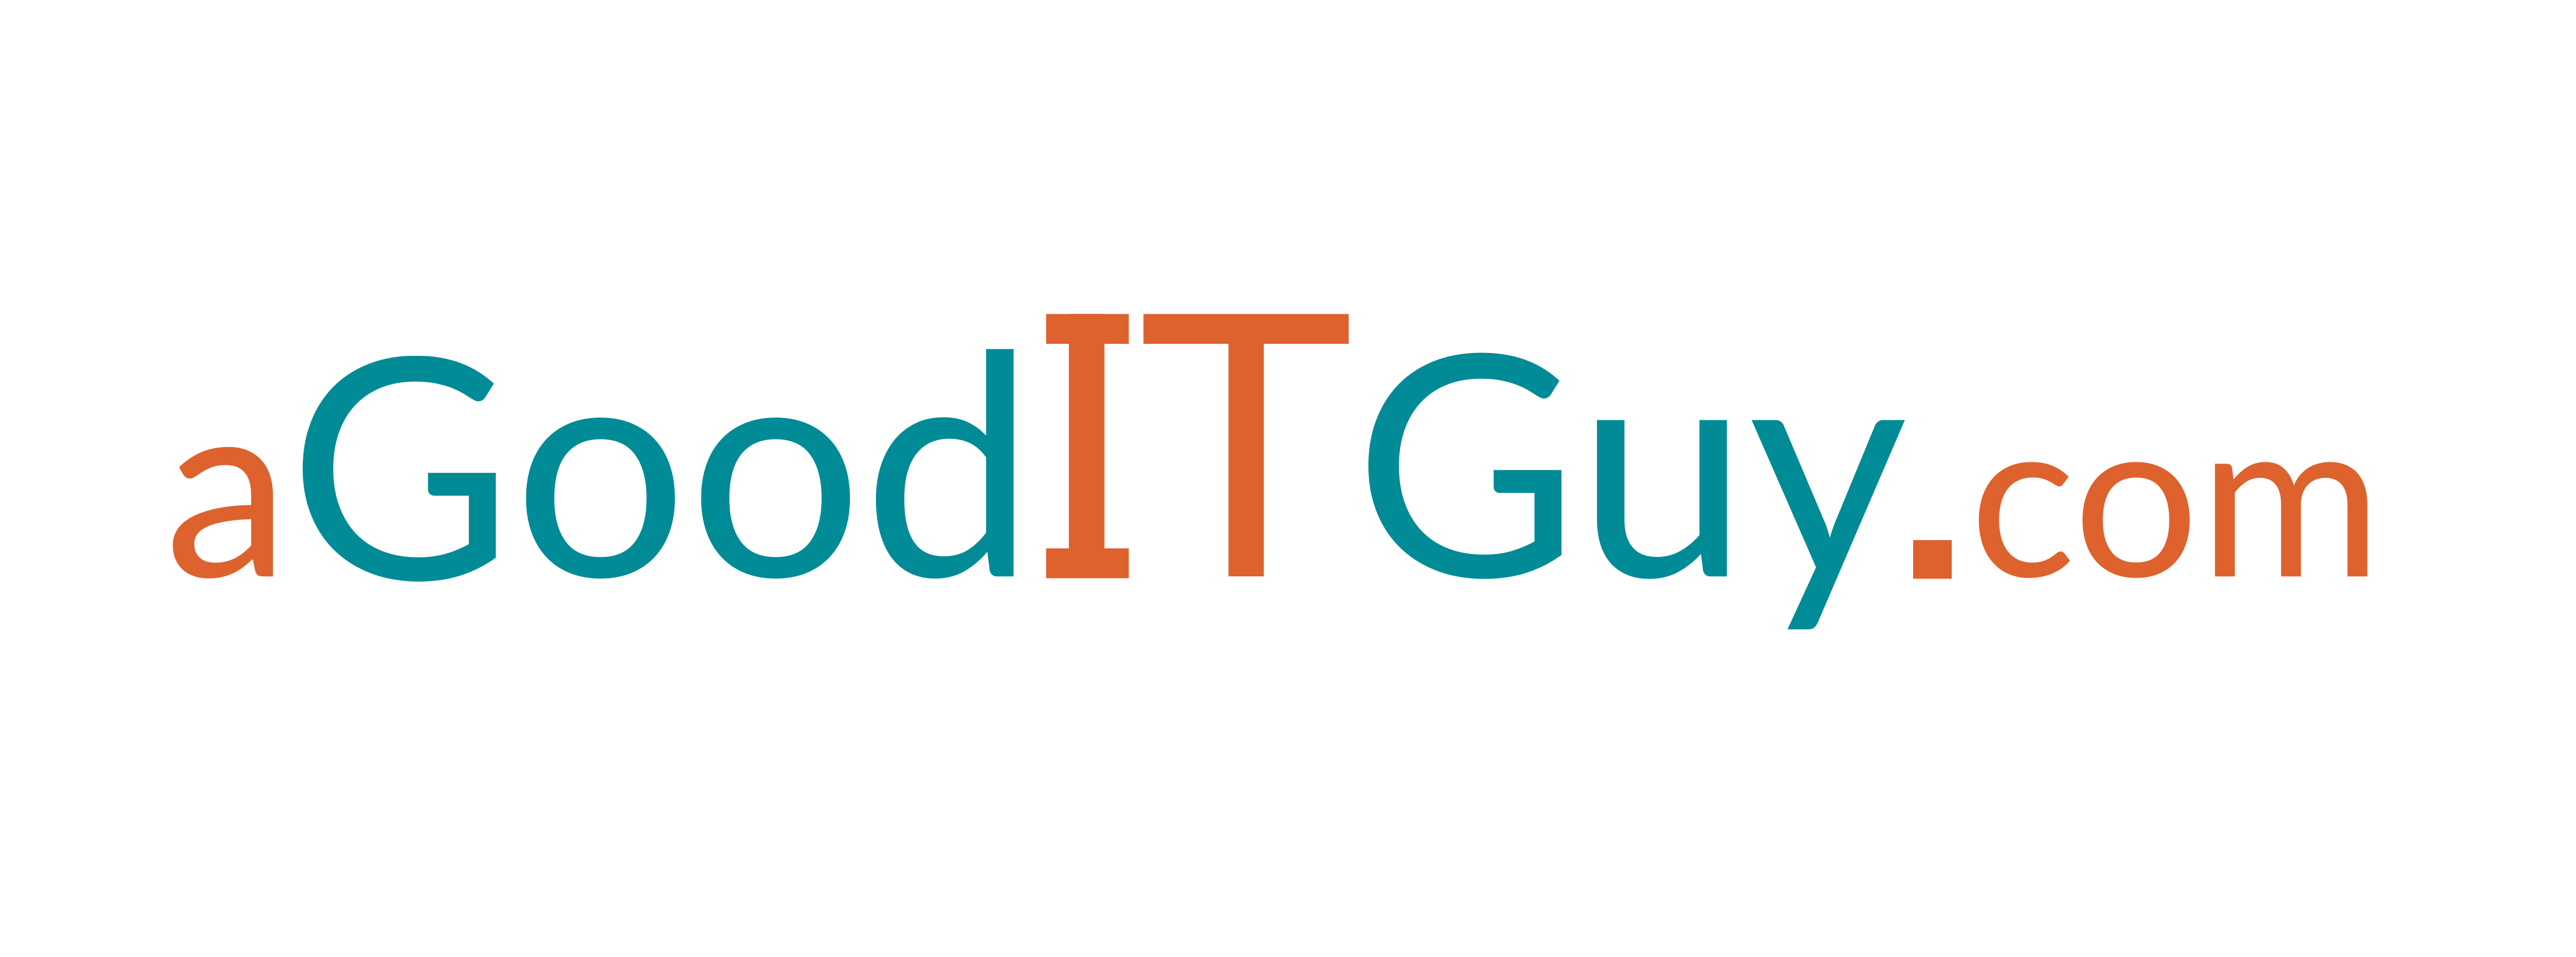 Click Here... a Good IT Guy